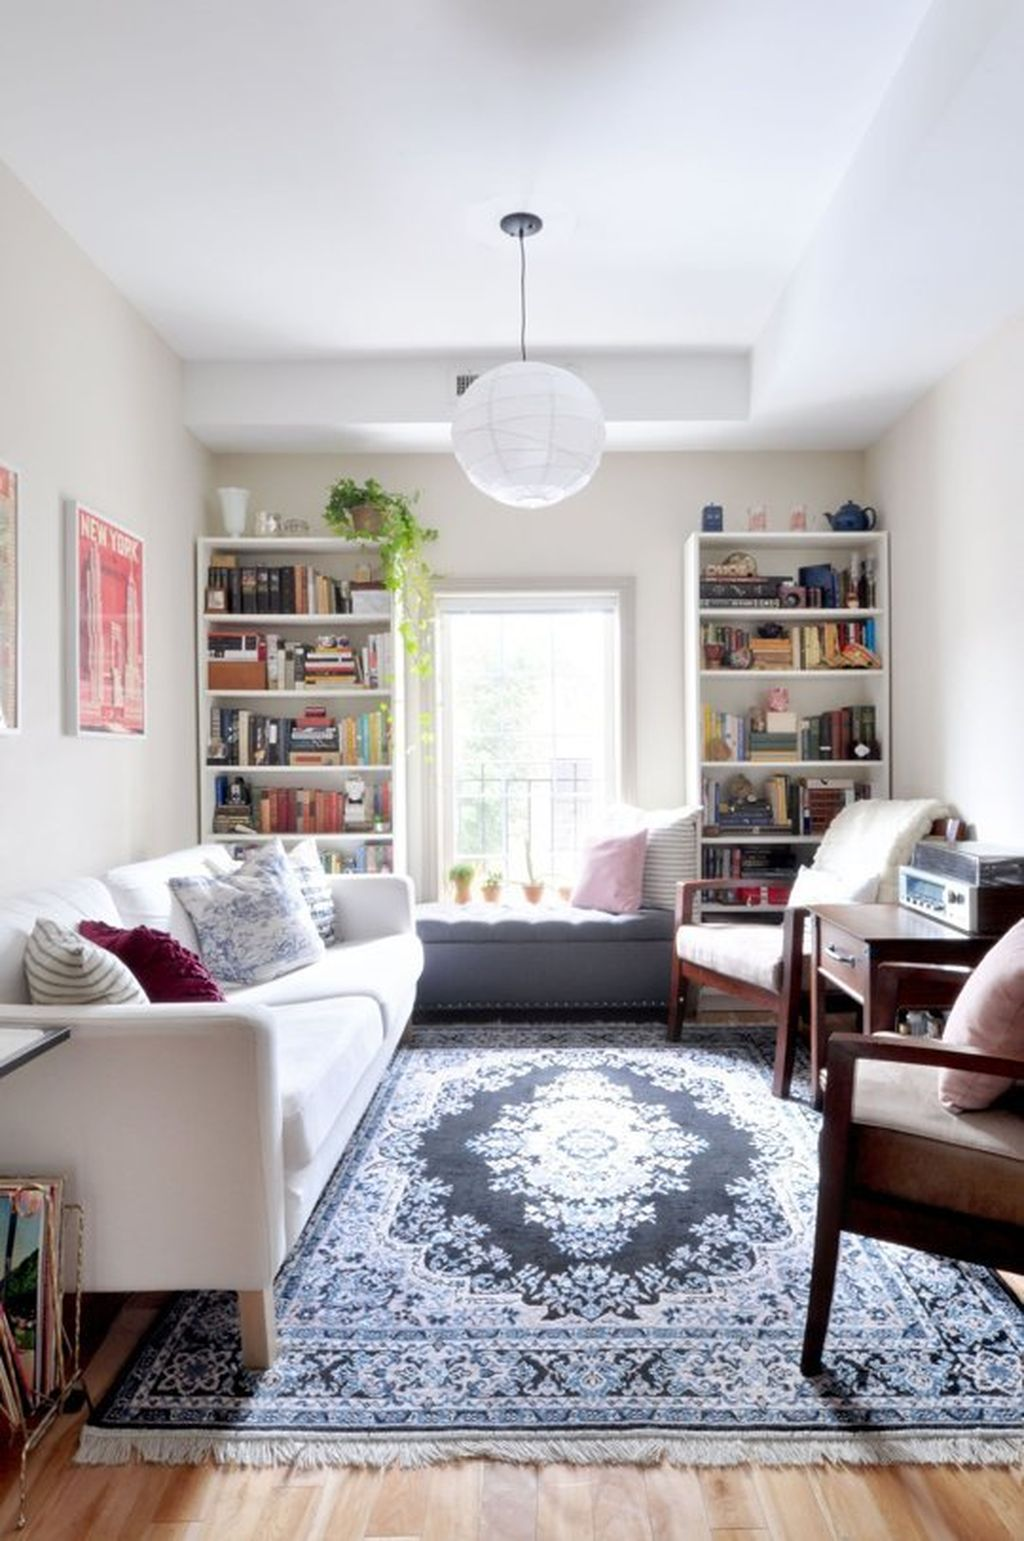 Inspiring And Affordable Decoration Ideas For Small Apartment 54